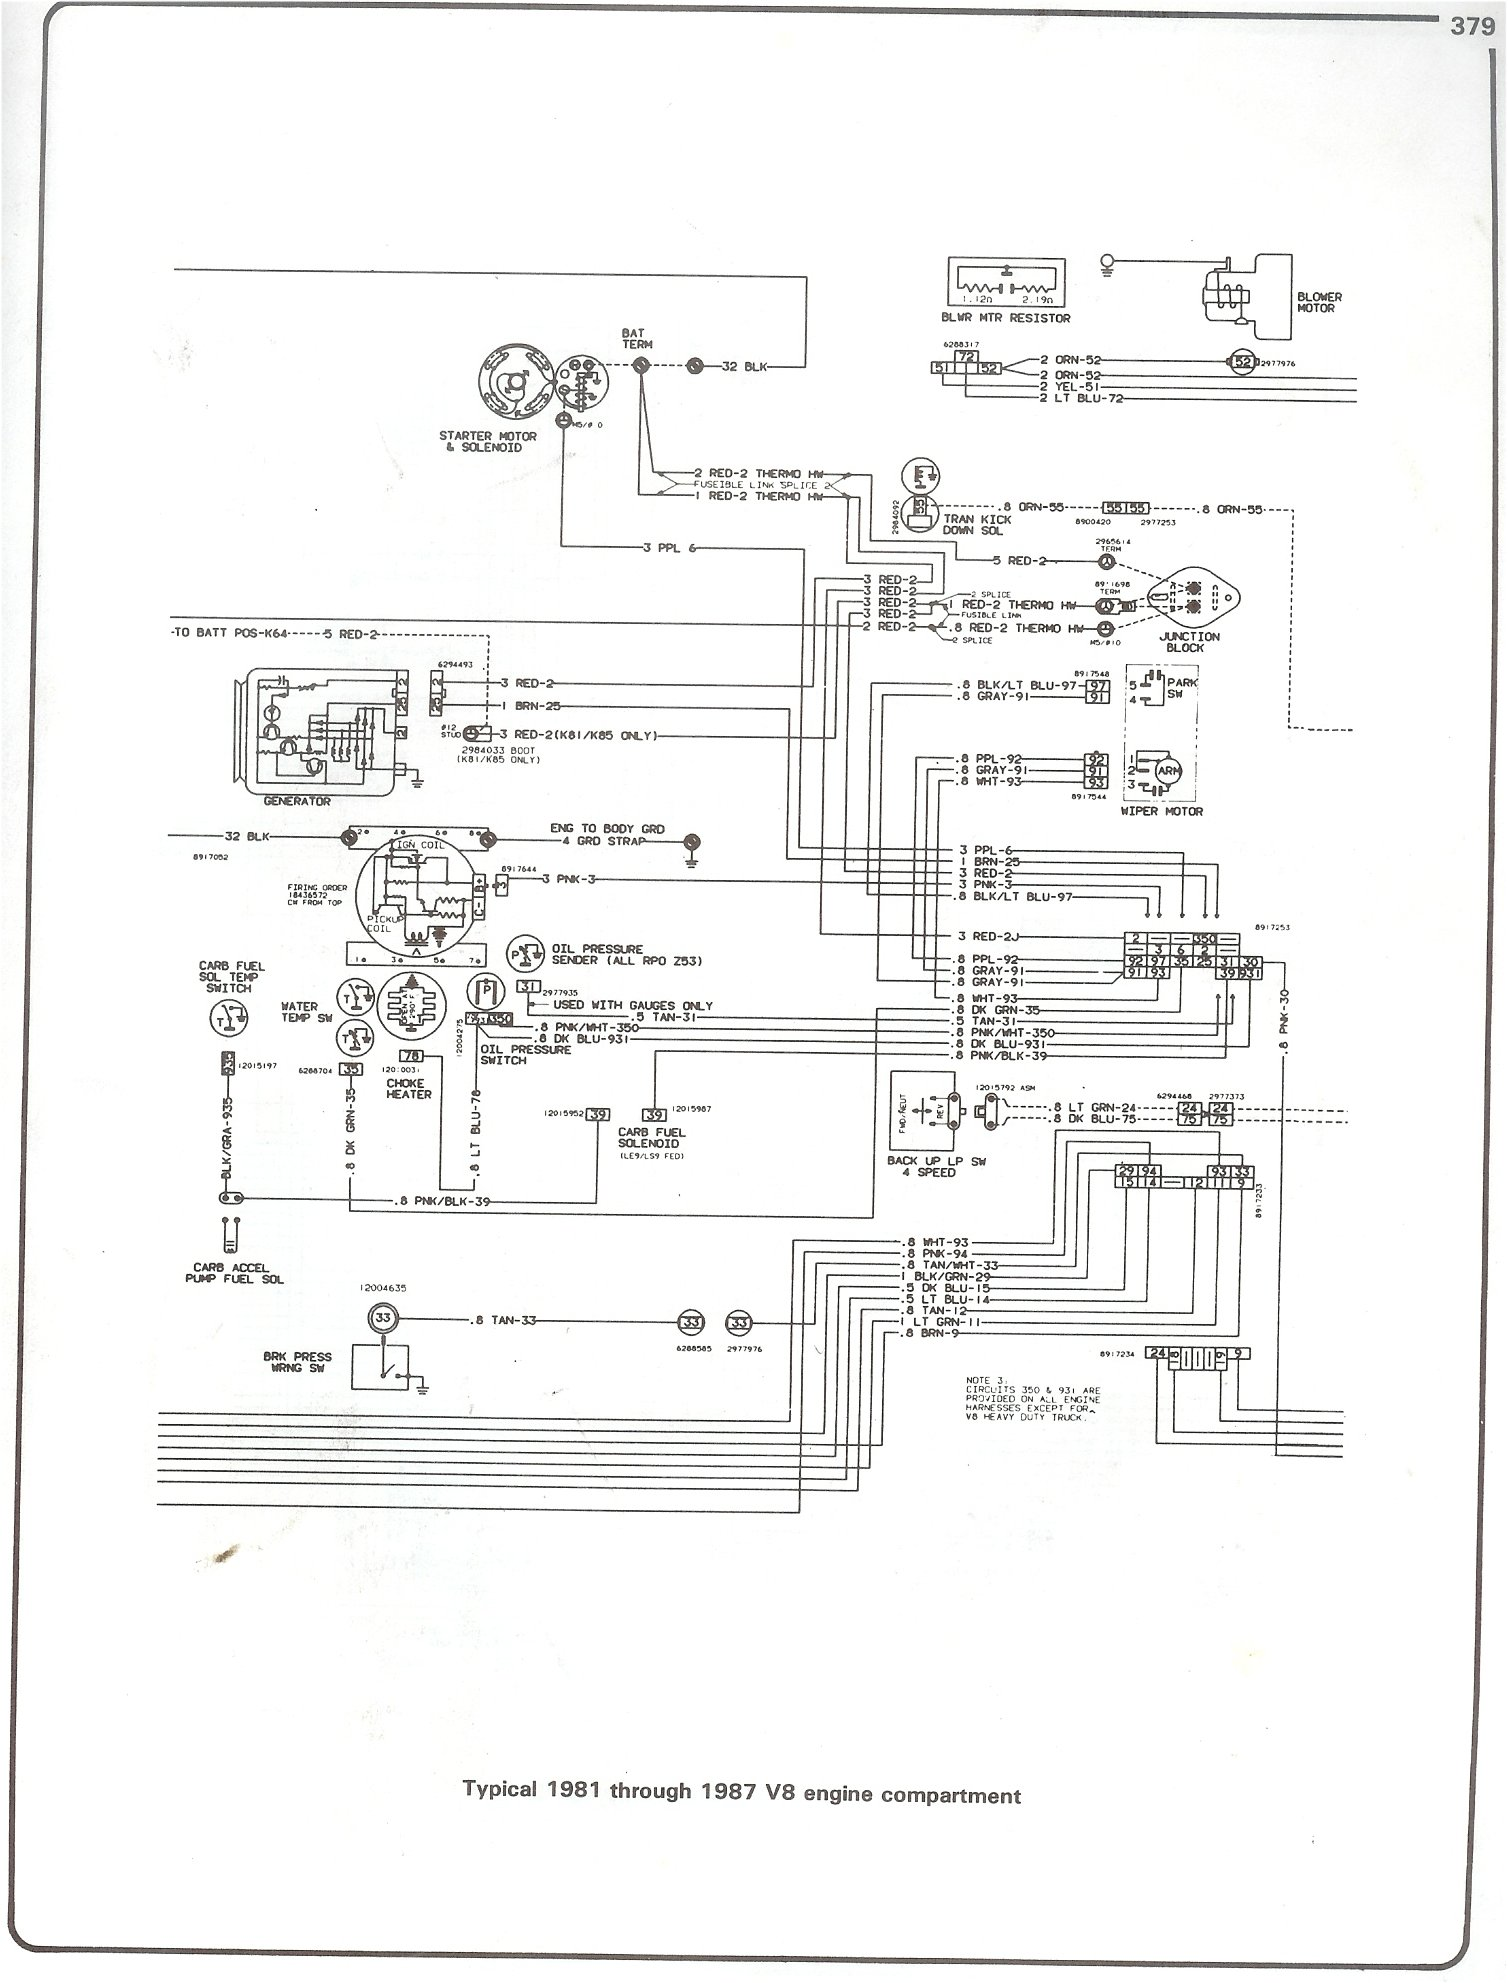 87 Suburban Wiring Diagram - WIRE Center •